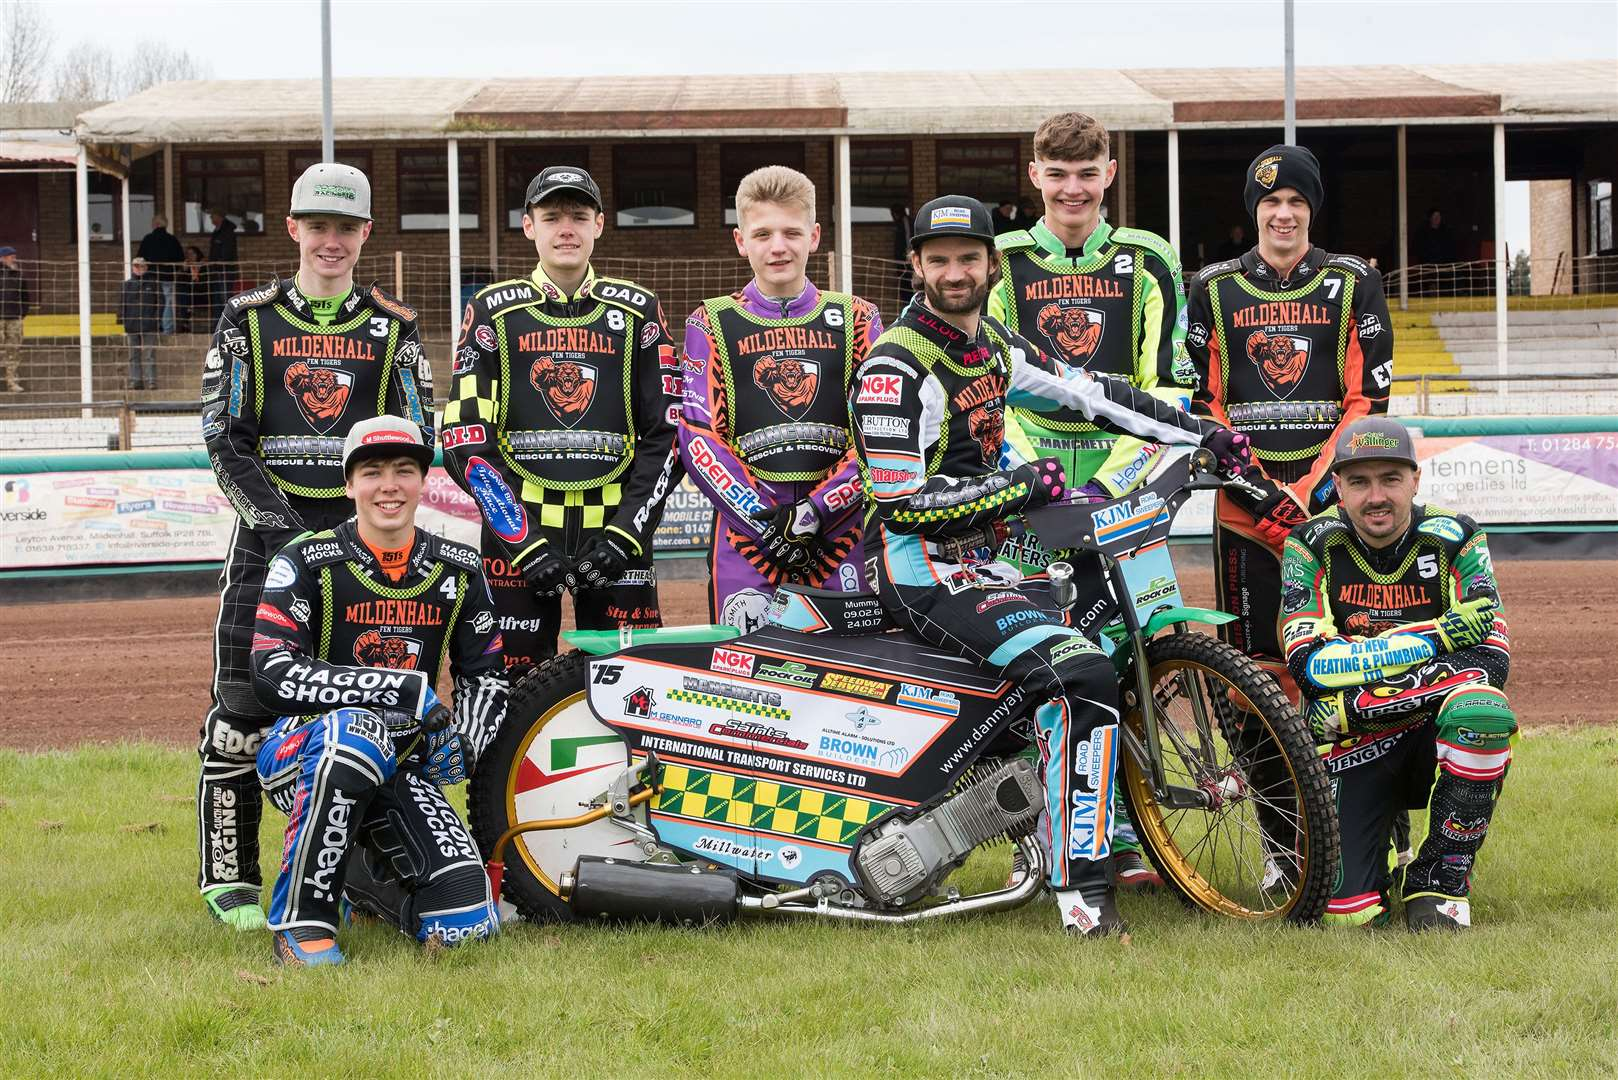 Mildenhall Fen Tigers Press and Practice DayFen Tigers team 2019 Danny Ayres, Sam Bebee, Charlie Brooks, Jason Edwards, Dave Wallinger, Elliot Kelly, Macauley Leek and Sam Norris Picture by Mark Westley. (8952704)